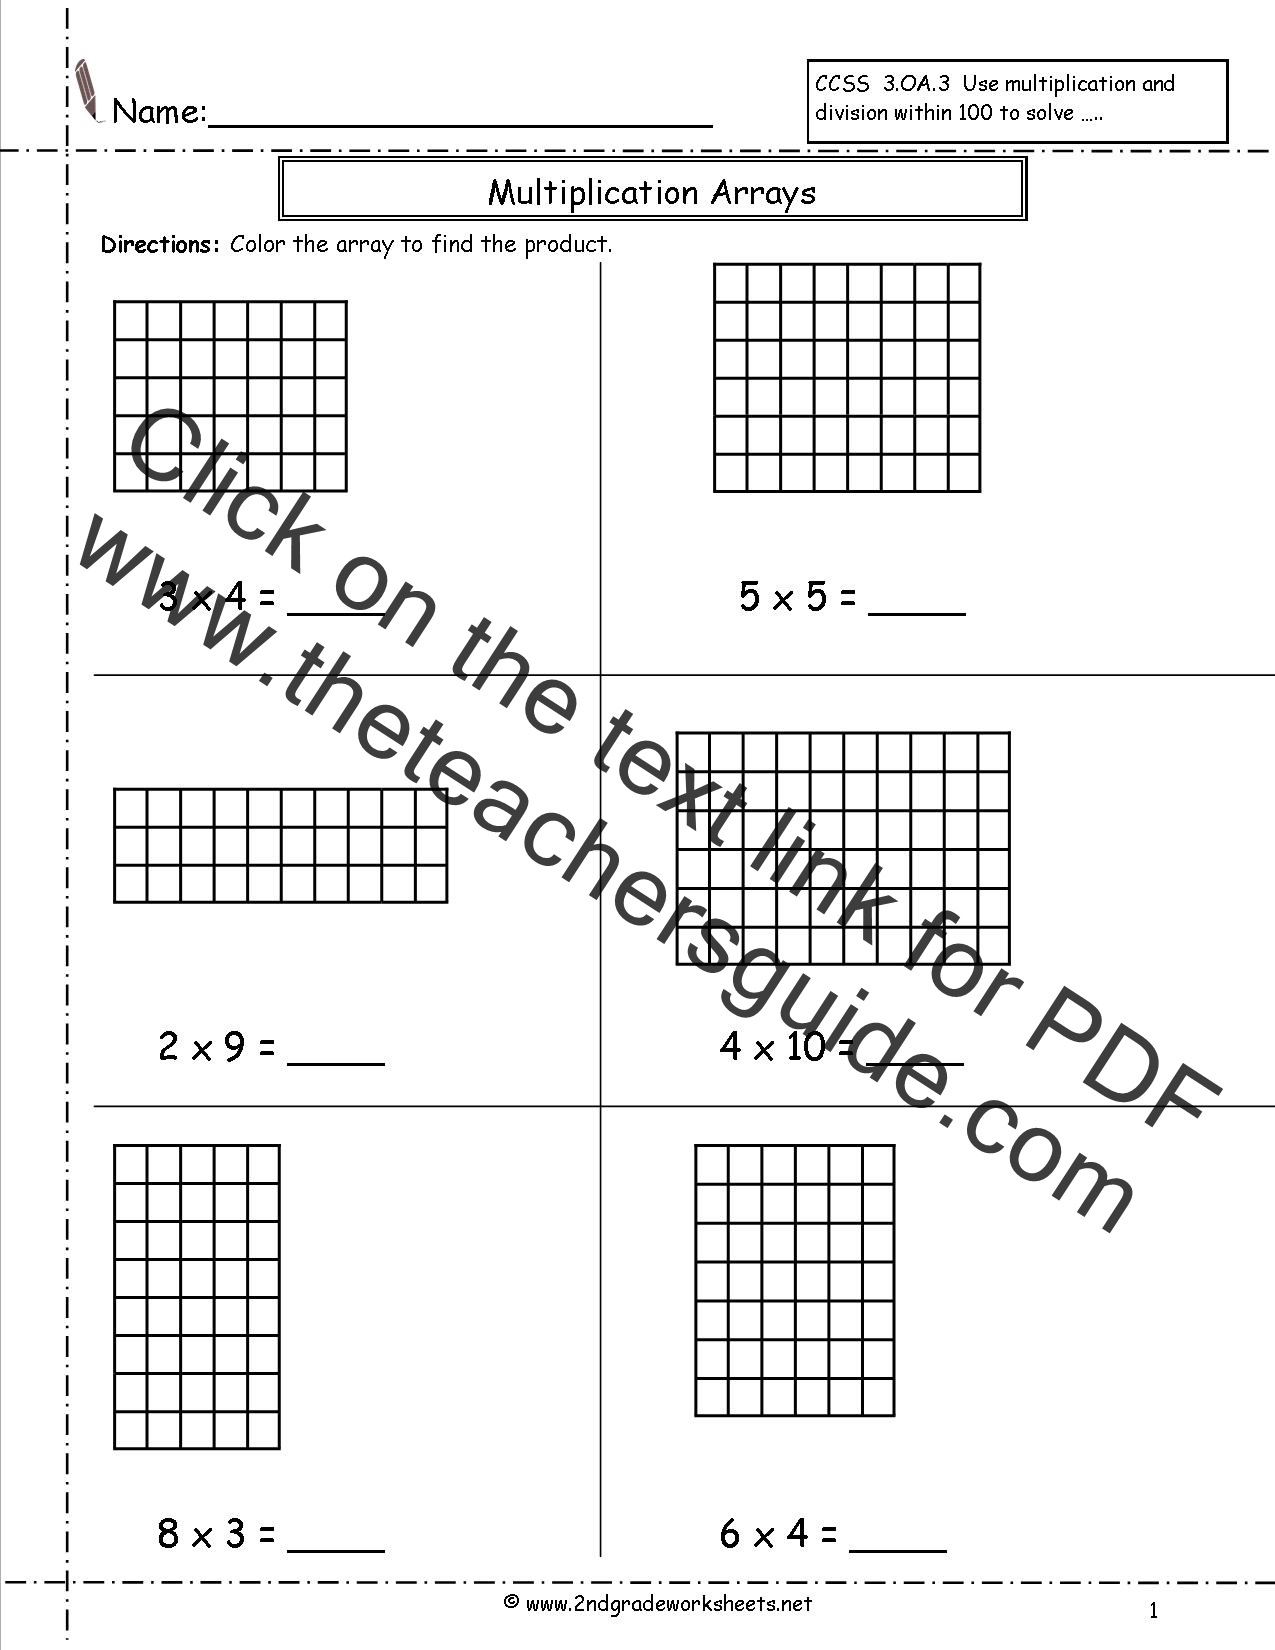 Multiplication Arrays Worksheets – Multiplication of 2 Worksheets